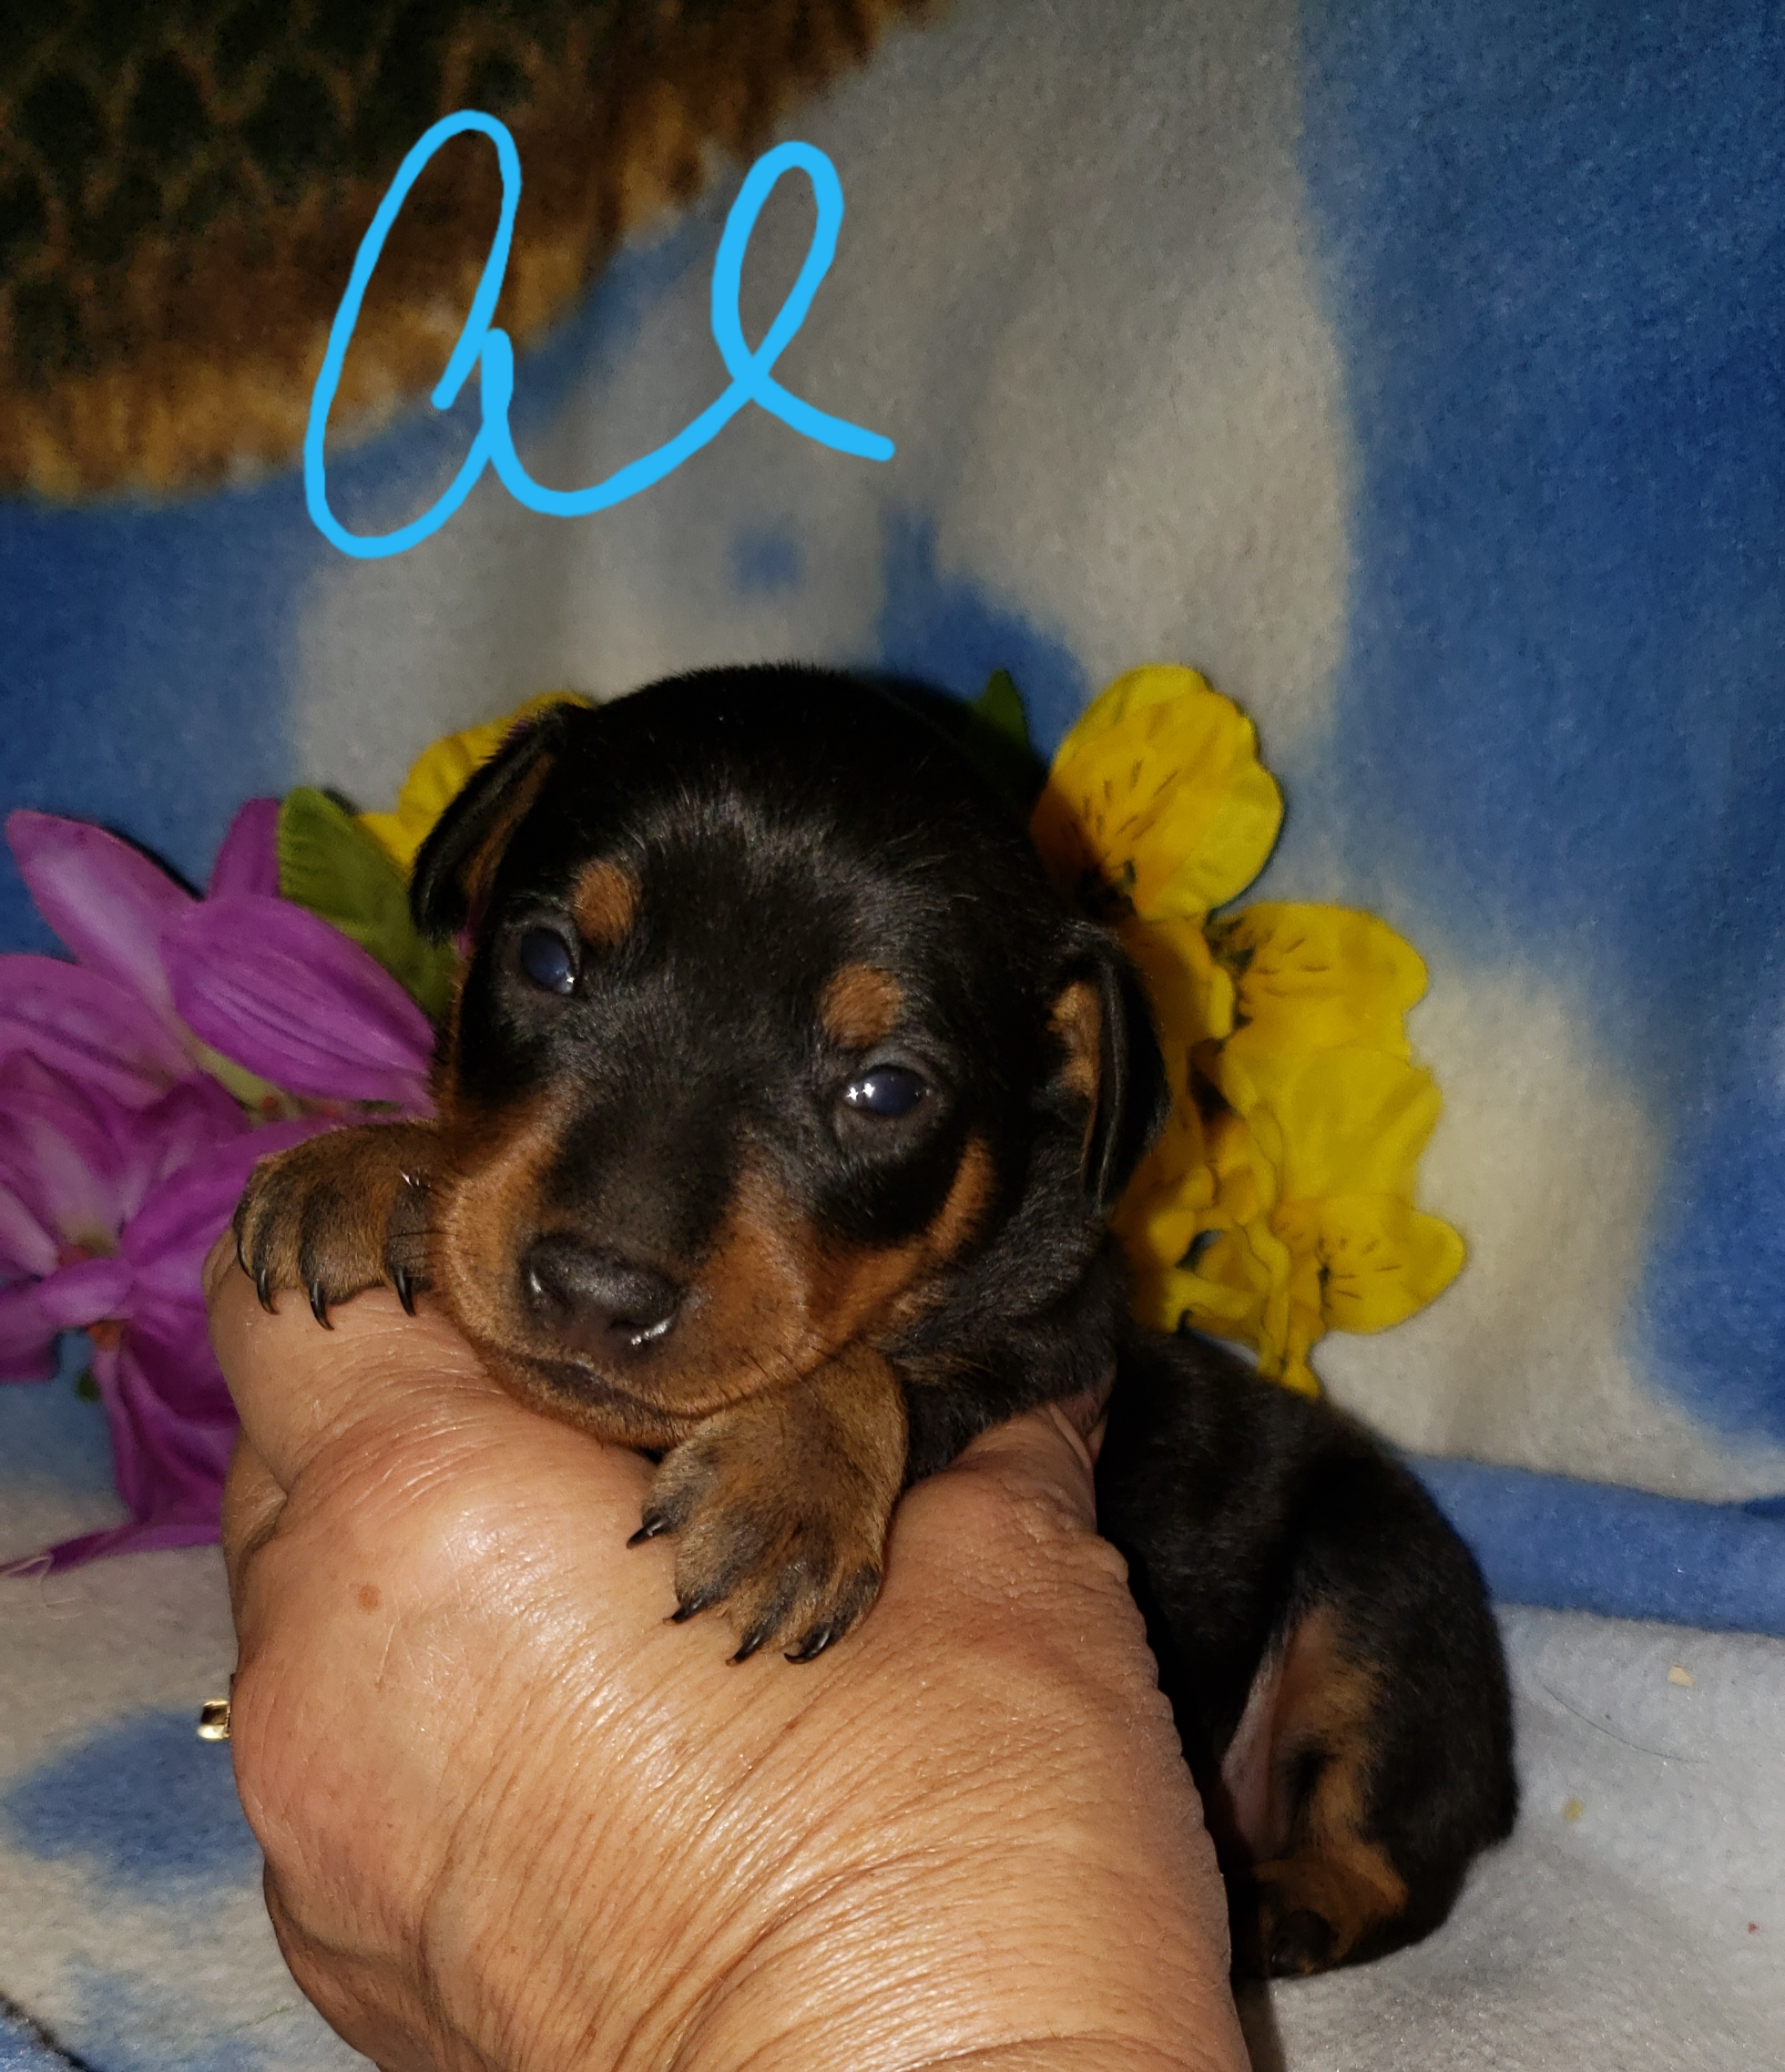 Miniature Pinscher (Min-Pin) puppies for sale